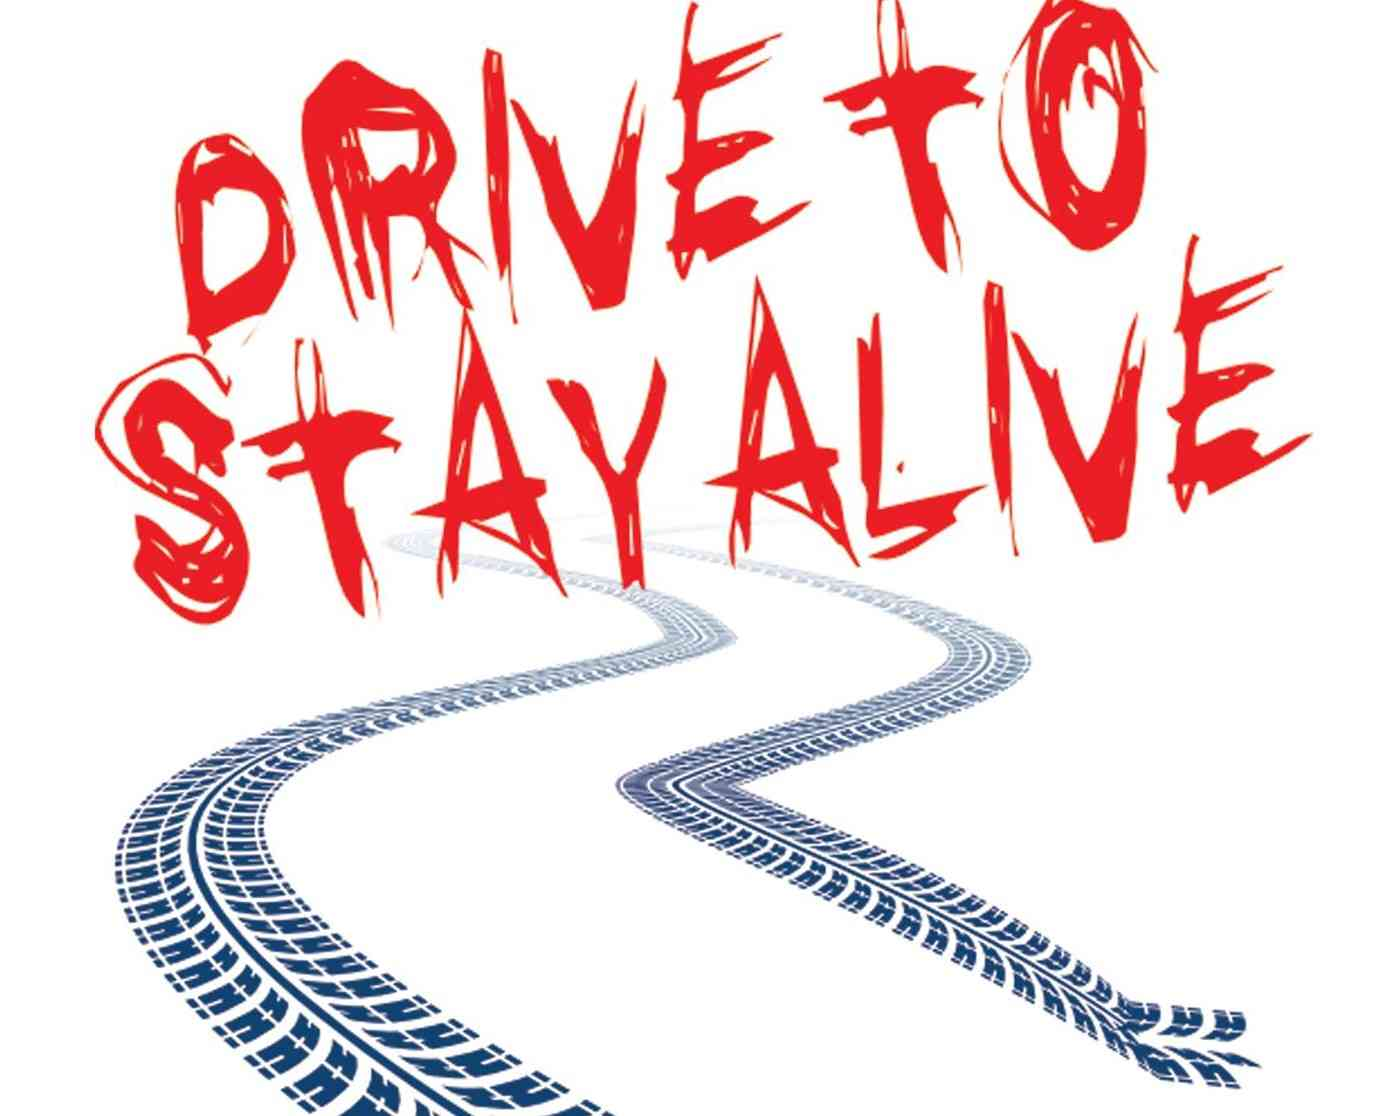 drive to stay alive